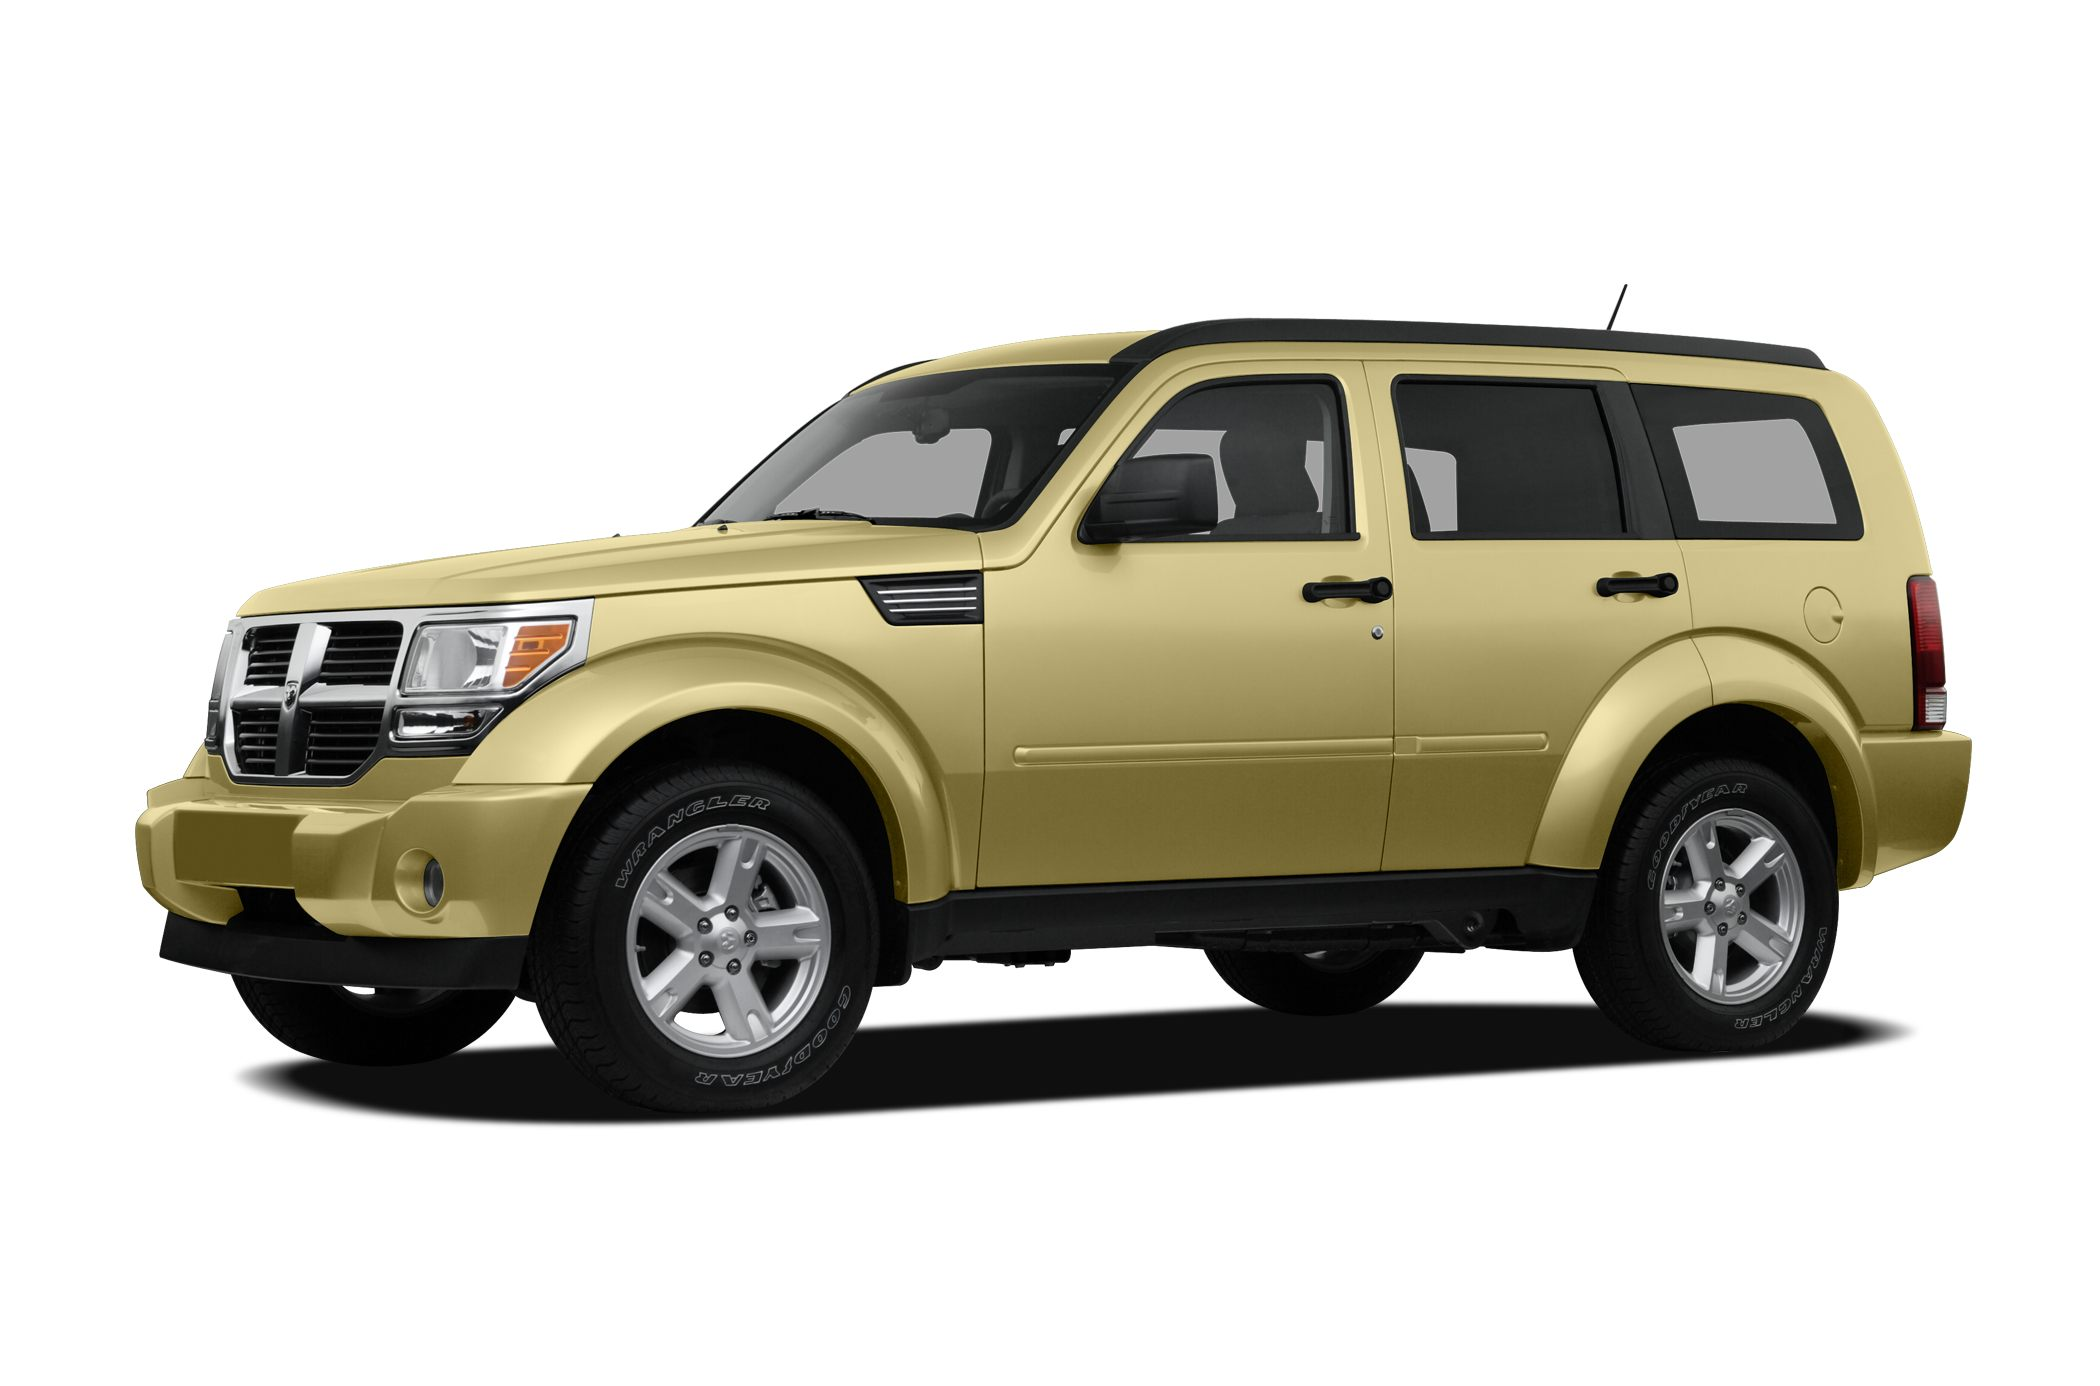 2010 Dodge Nitro SE SUV for sale in Tacoma for $17,614 with 46,970 miles